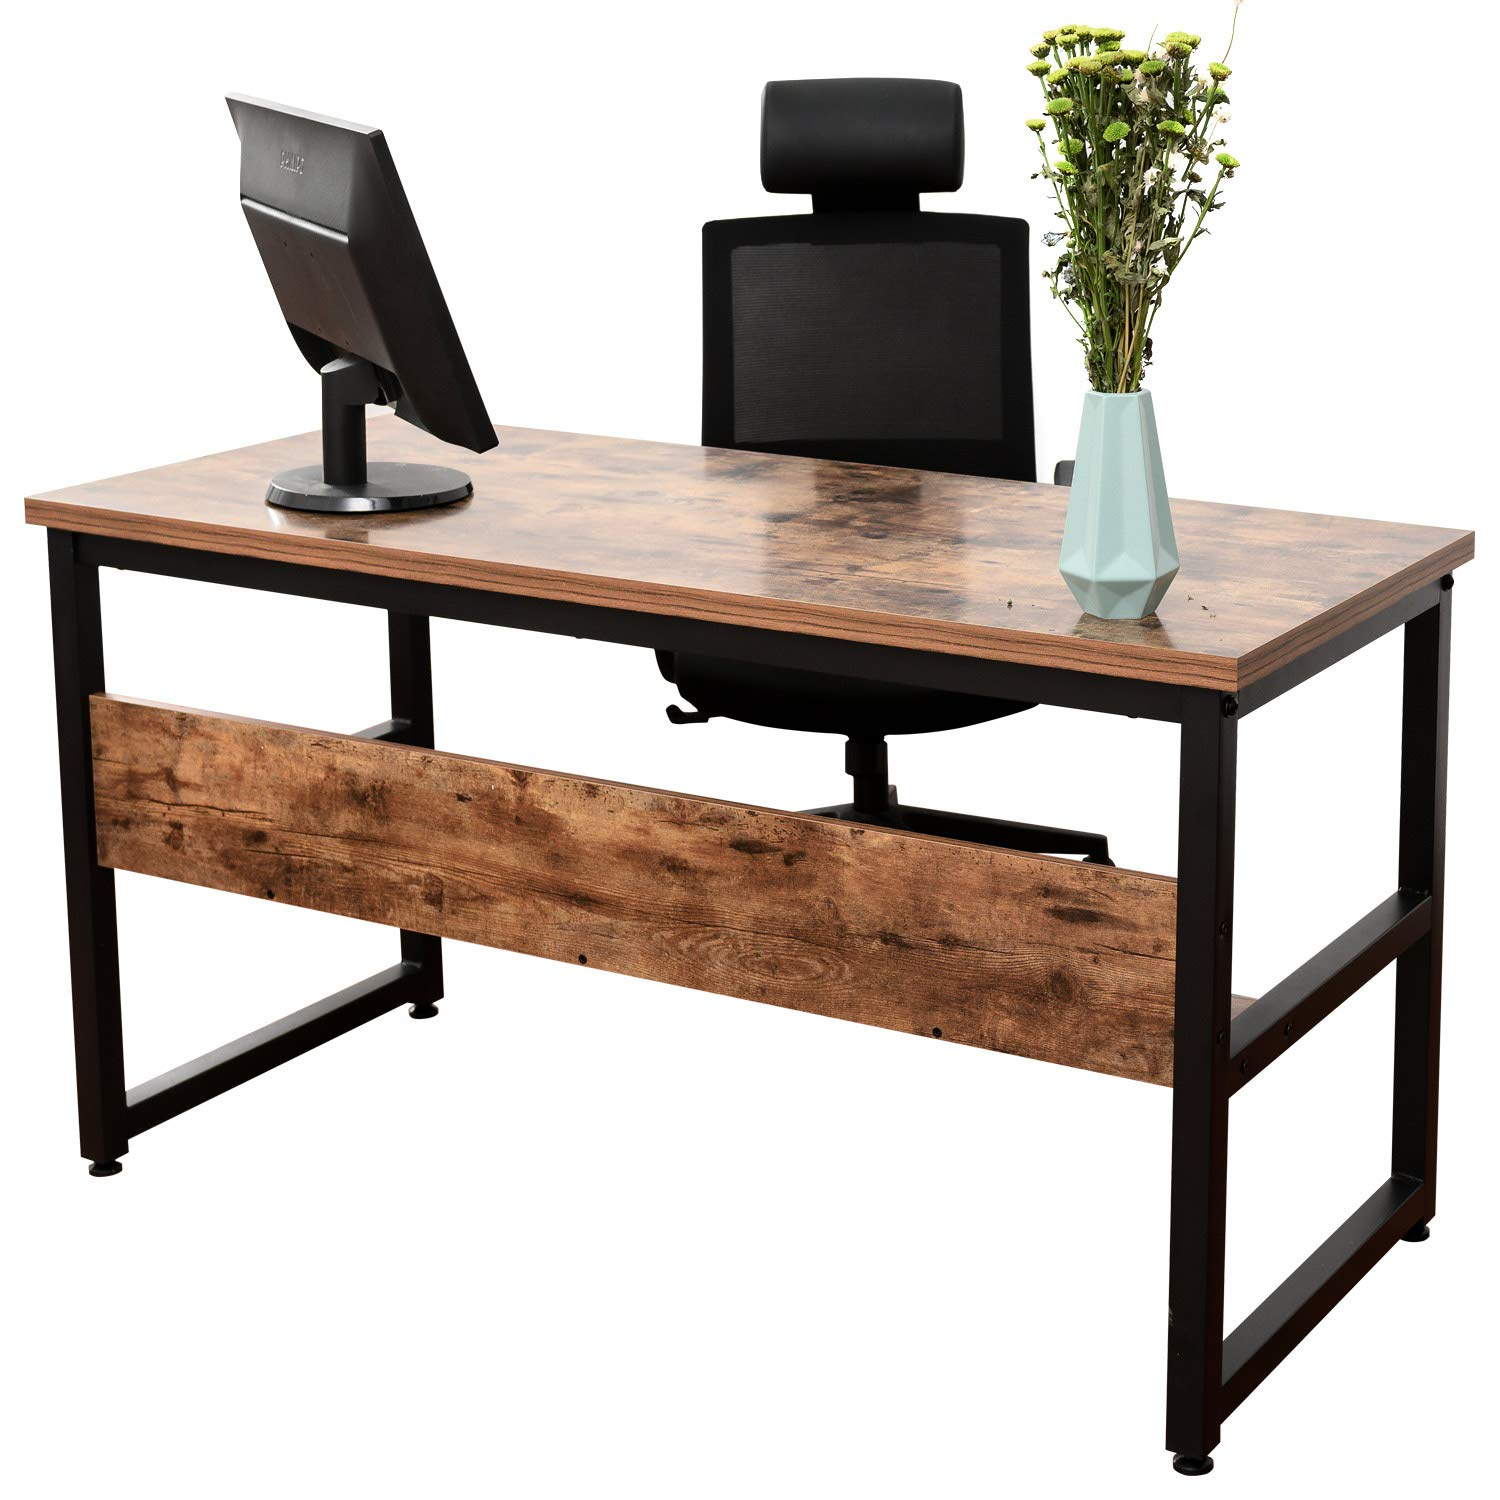 IRONCK Computer Desk 55'' with Bookshelf, Office Desk, Writing Desk, Wood and Metal Frame, Industrial Style, Study Table Workstation for Home Office Furniture by IRONCK (Image #7)